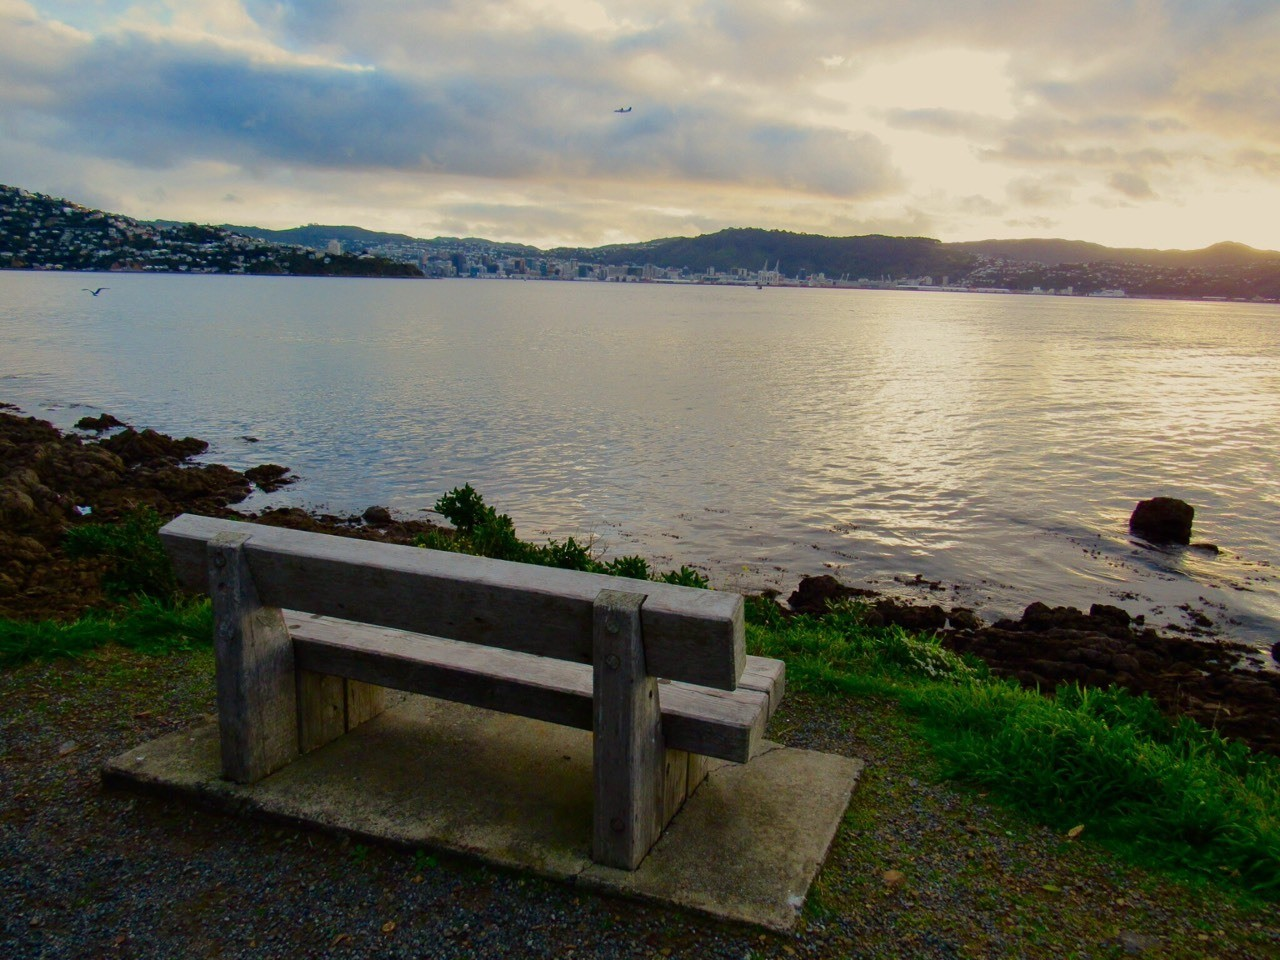 Bench, unused, Wellington City viewed from the Miramar Peninsula, early evening last weekend.